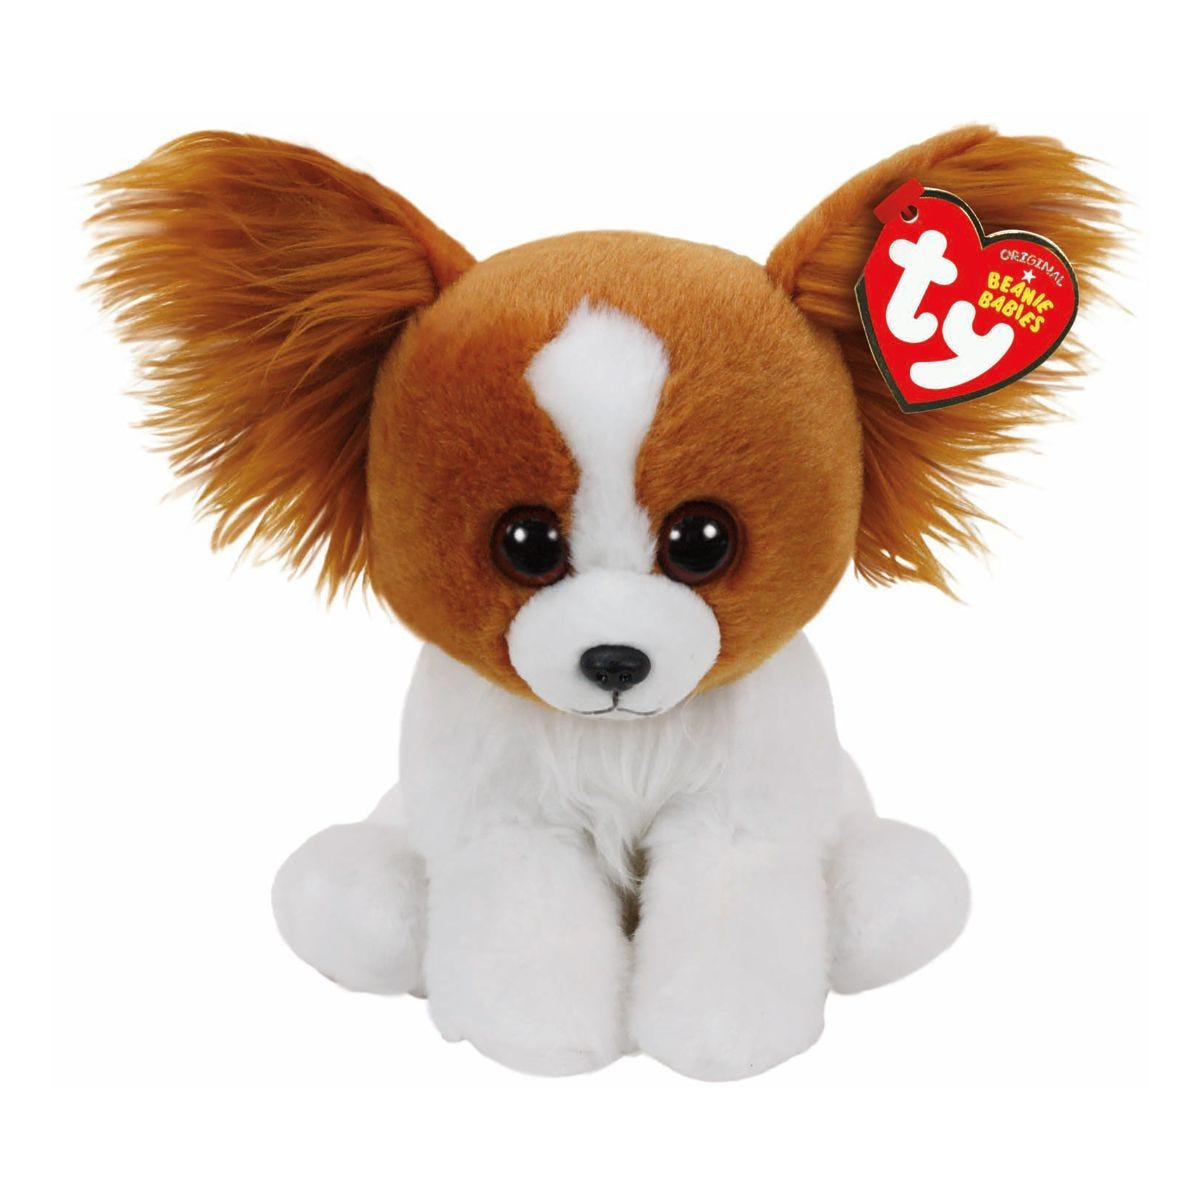 Image of Ty Barks Dog Beanie Baby Cuddly Toy